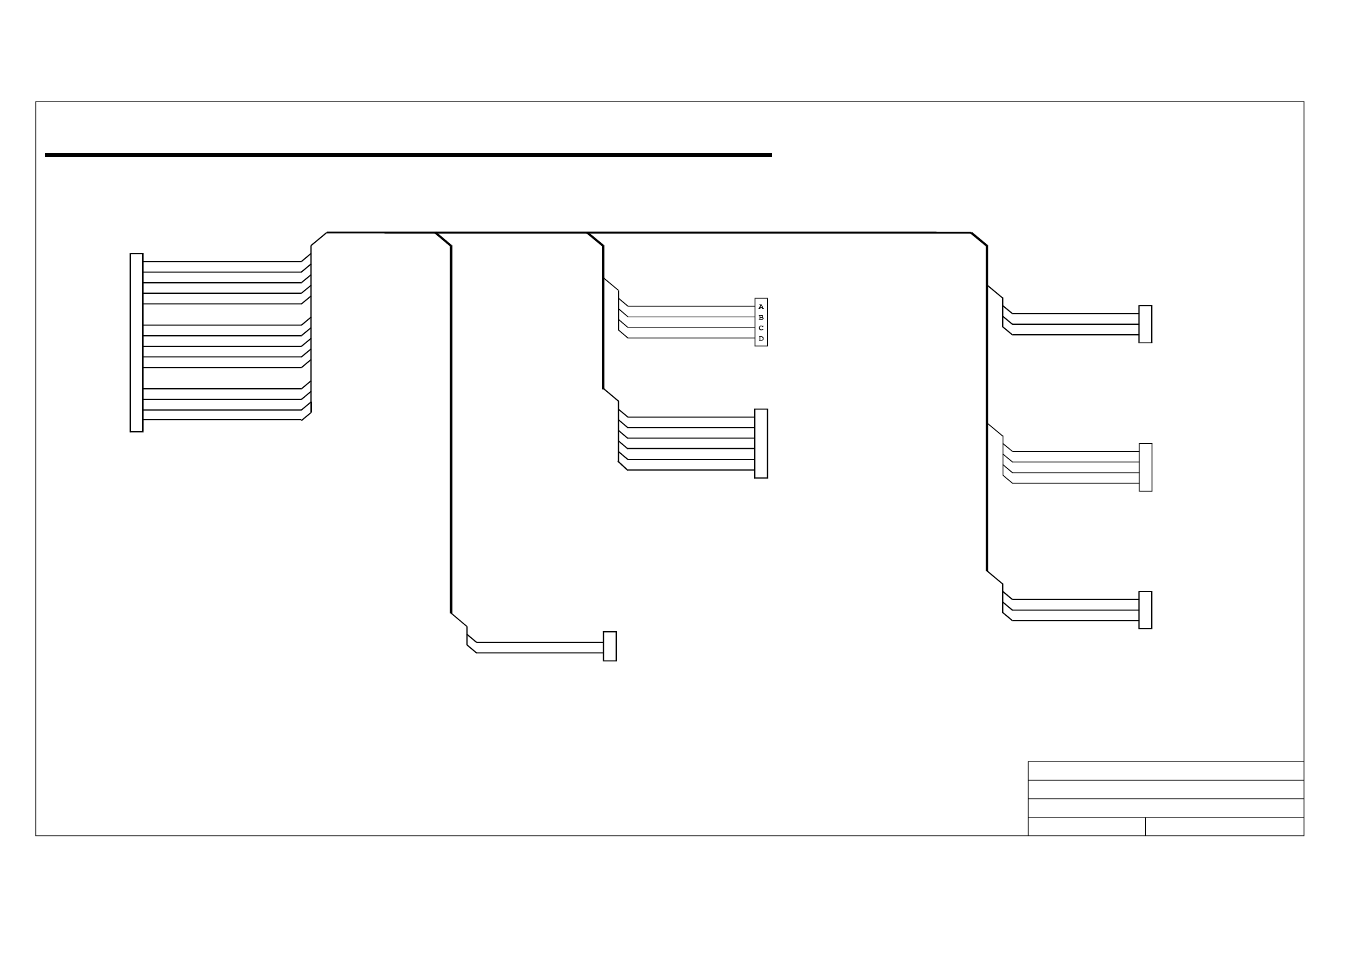 [SCHEMATICS_4PO]  DIAGRAM] Denso 13b Wiring Diagram FULL Version HD Quality Wiring Diagram -  116655.VINCENTESCRIVE.FR | Denso 13b Wiring Diagram |  | vincentescrive.fr